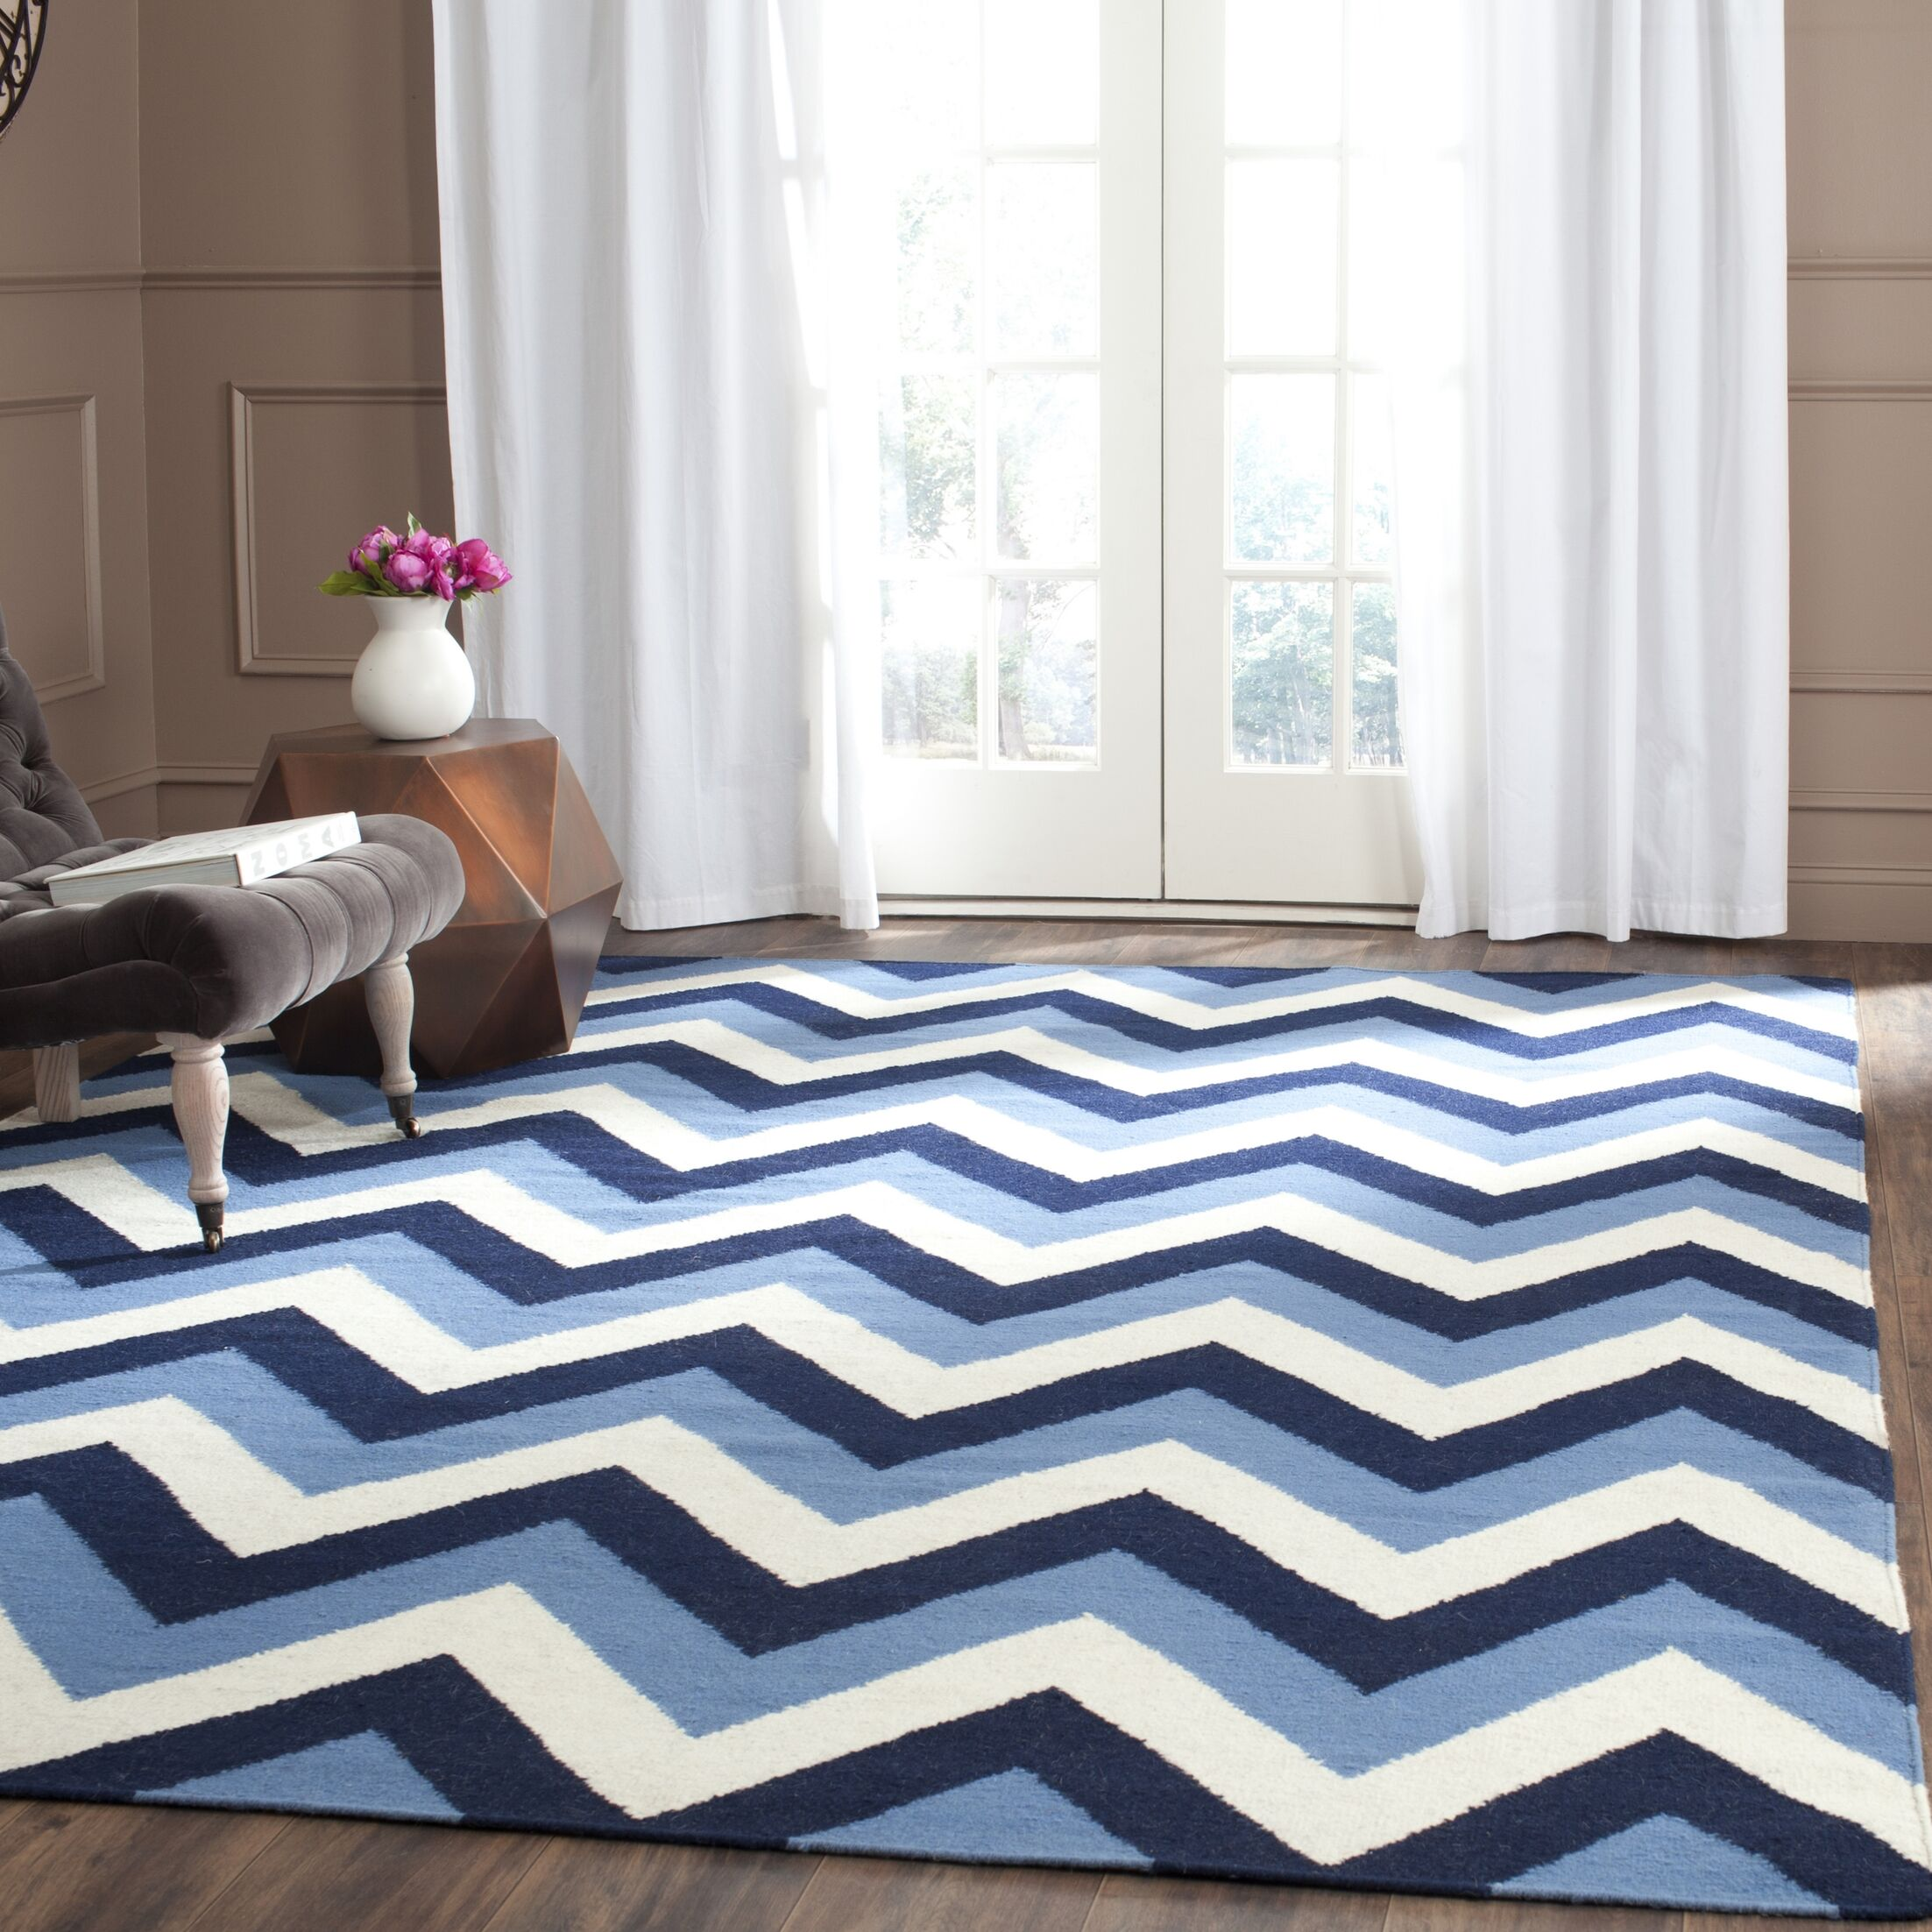 Dhurries Hand-Woven Navy/Light Blue Area Rug Rug Size: Rectangle 3' x 5'